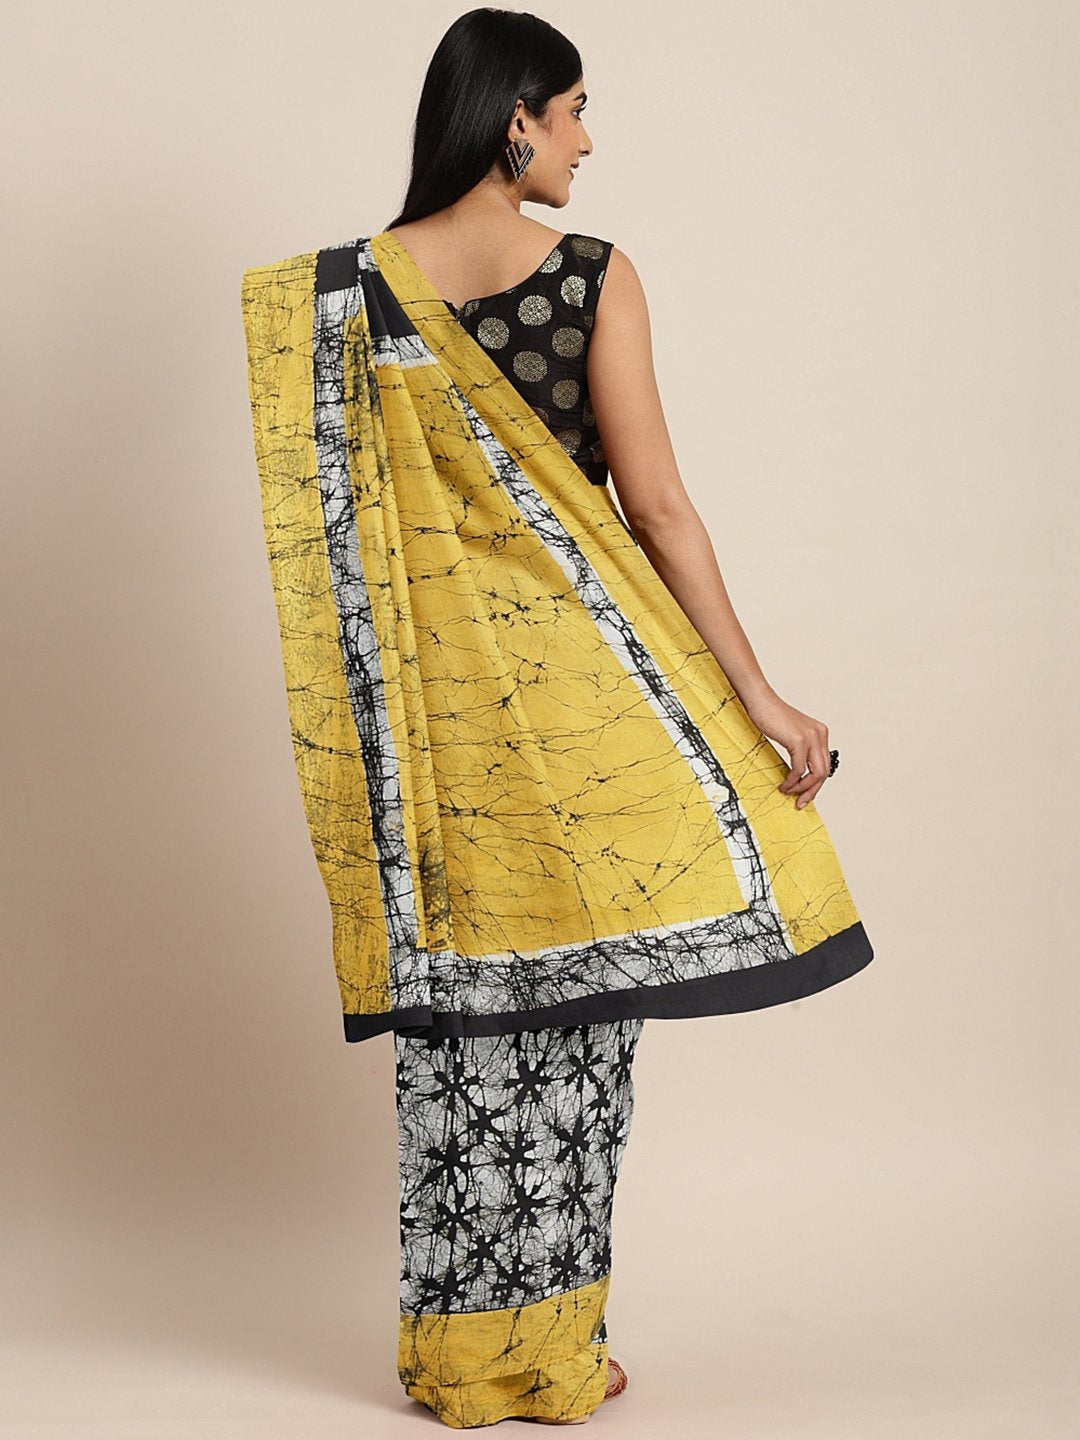 Off-White Black Handblock Print Bagru Saree-Saree-Kalakari India-BHKPSA0102-Cotton, Geographical Indication, Hand Blocks, Hand Crafted, Heritage Prints, Sarees, Shibori, Sustainable Fabrics-[Linen,Ethnic,wear,Fashionista,Handloom,Handicraft,Indigo,blockprint,block,print,Cotton,Chanderi,Blue, latest,classy,party,bollywood,trendy,summer,style,traditional,formal,elegant,unique,style,hand,block,print, dabu,booti,gift,present,glamorous,affordable,collectible,Sari,Saree,printed, holi, Diwali, birthday